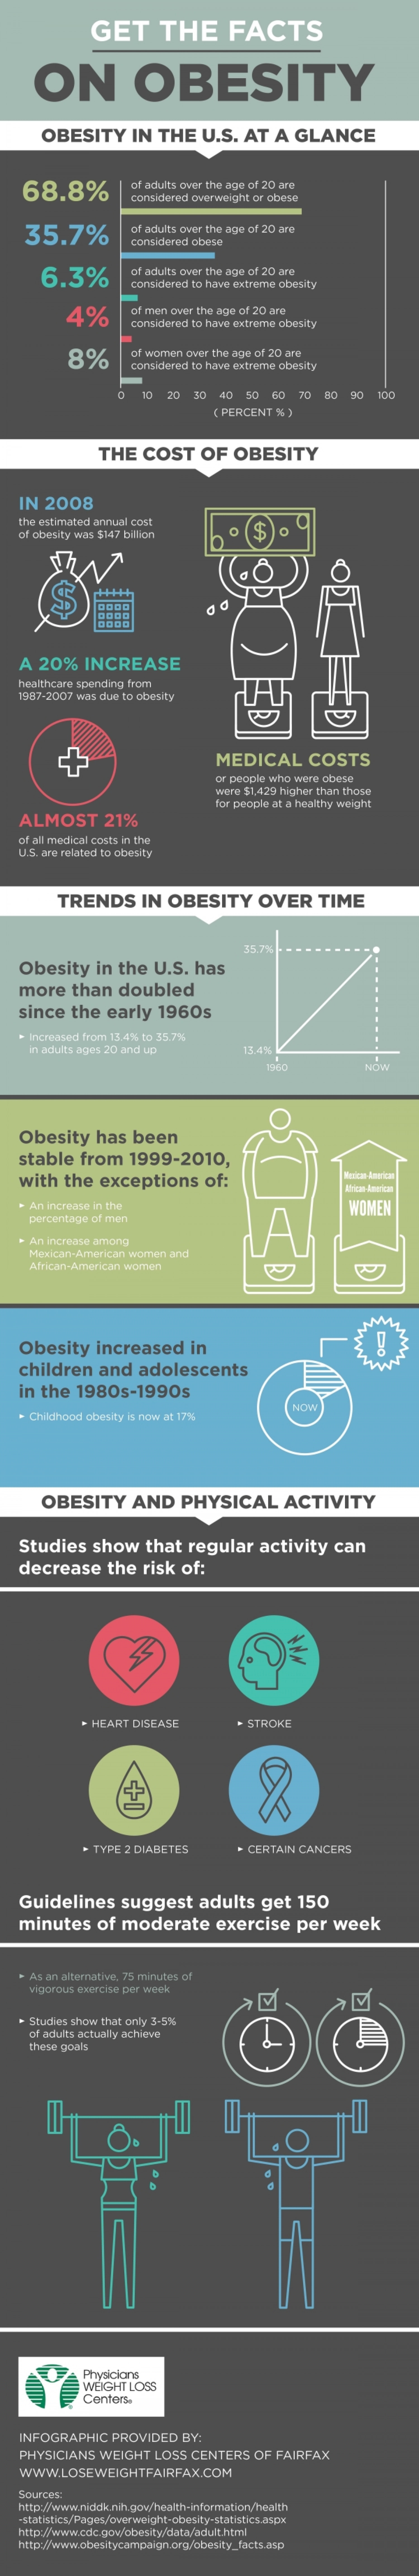 Get the Facts on Obesit Infographic